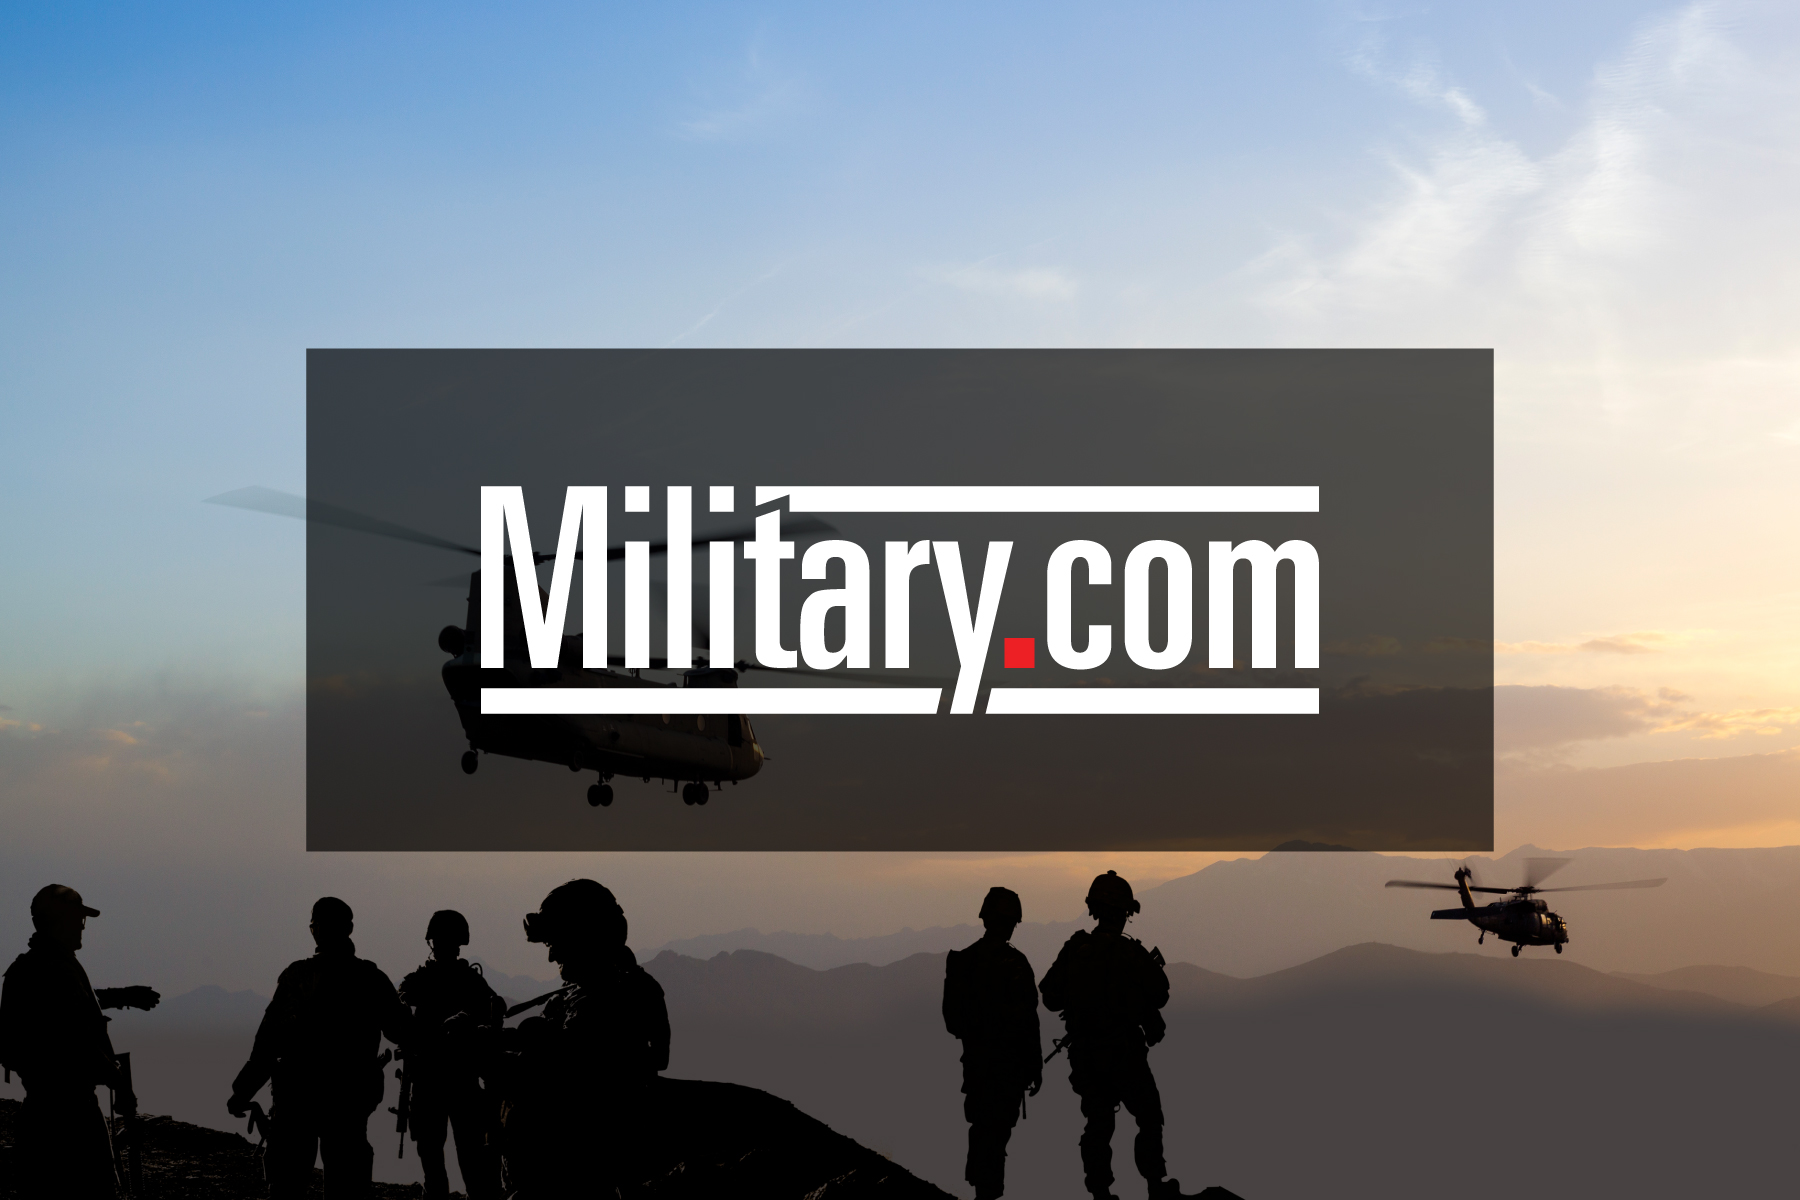 U.S. and coalition forces scaled back partnering and advising operations with the Afghan National Security Forces Sunday in response to protests to the anti-Muslim You Tube film and the spike of insider attacks.